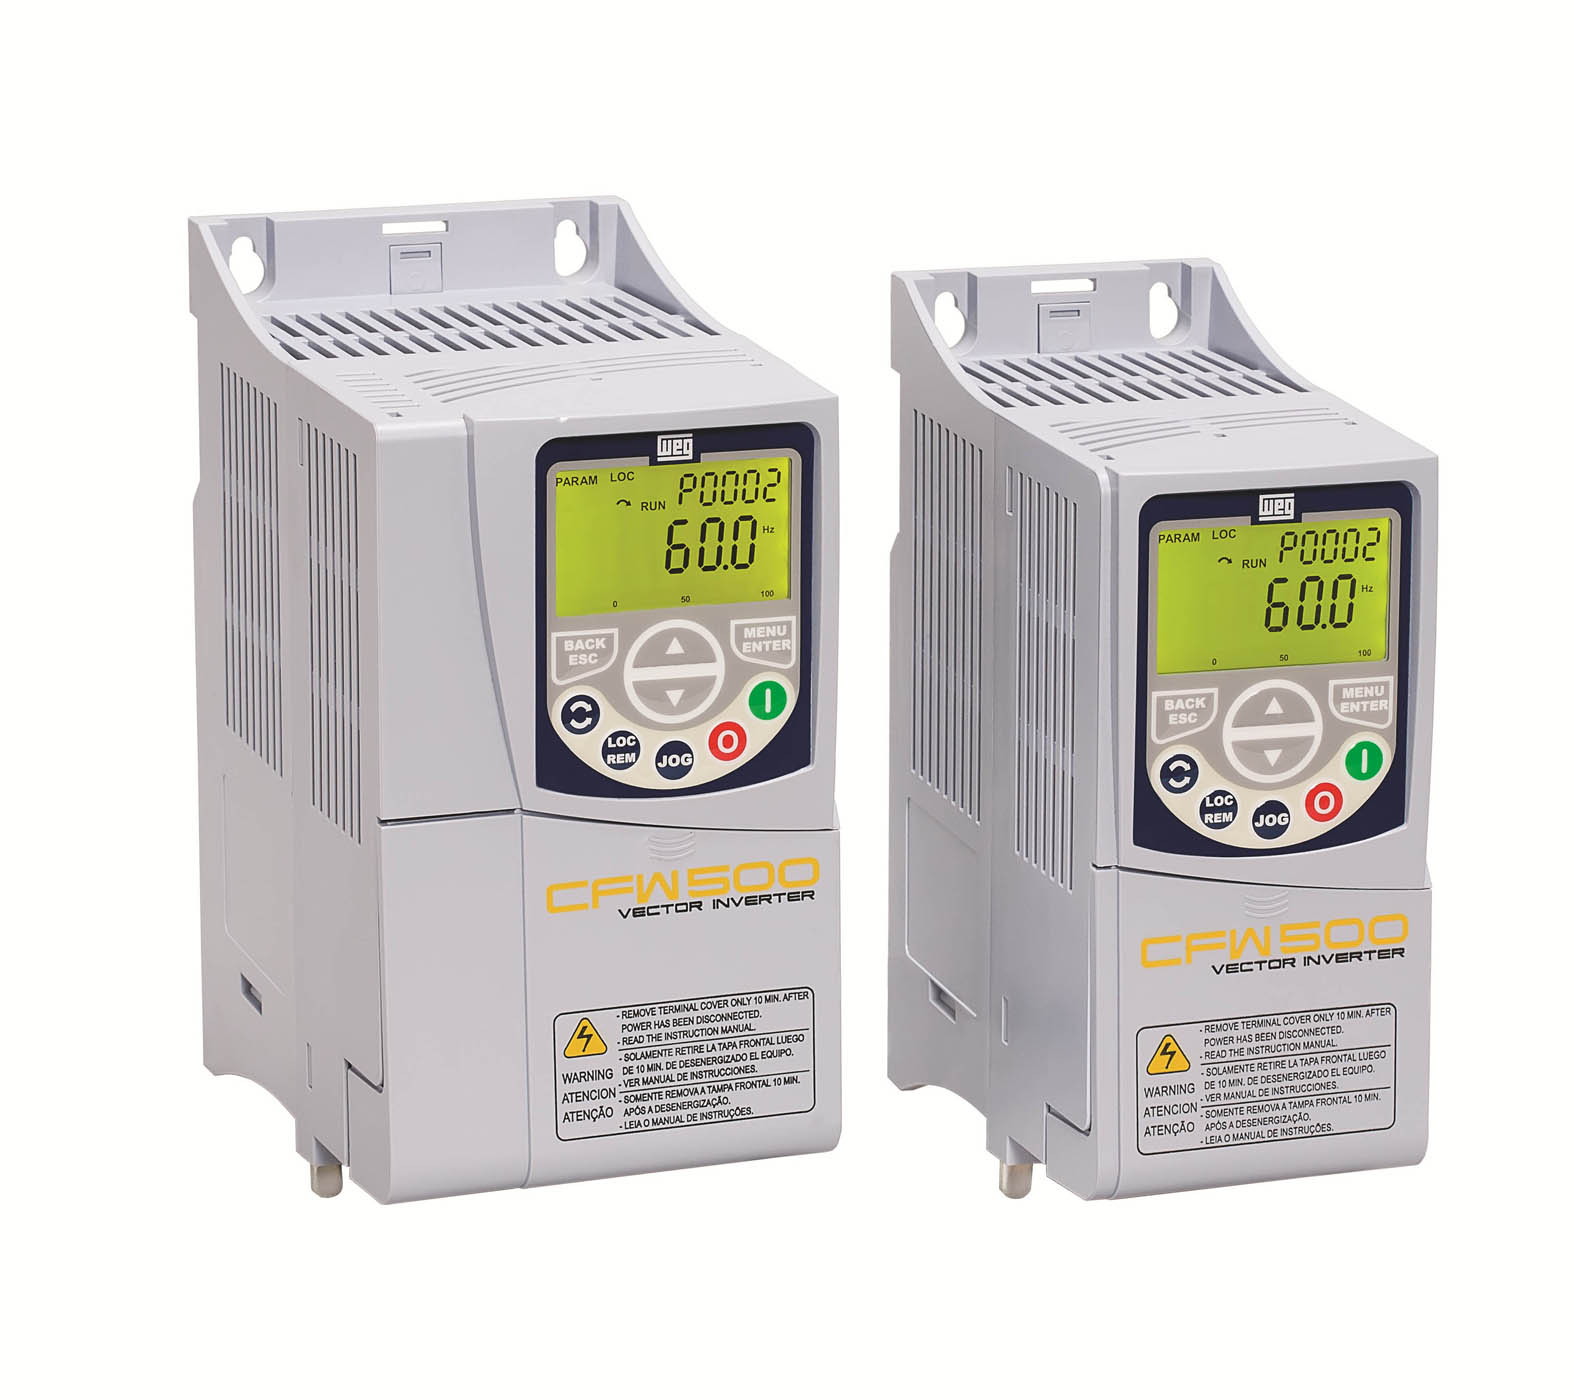 WEG launches new cost-effective variable speed drive with embedded micro-PLC